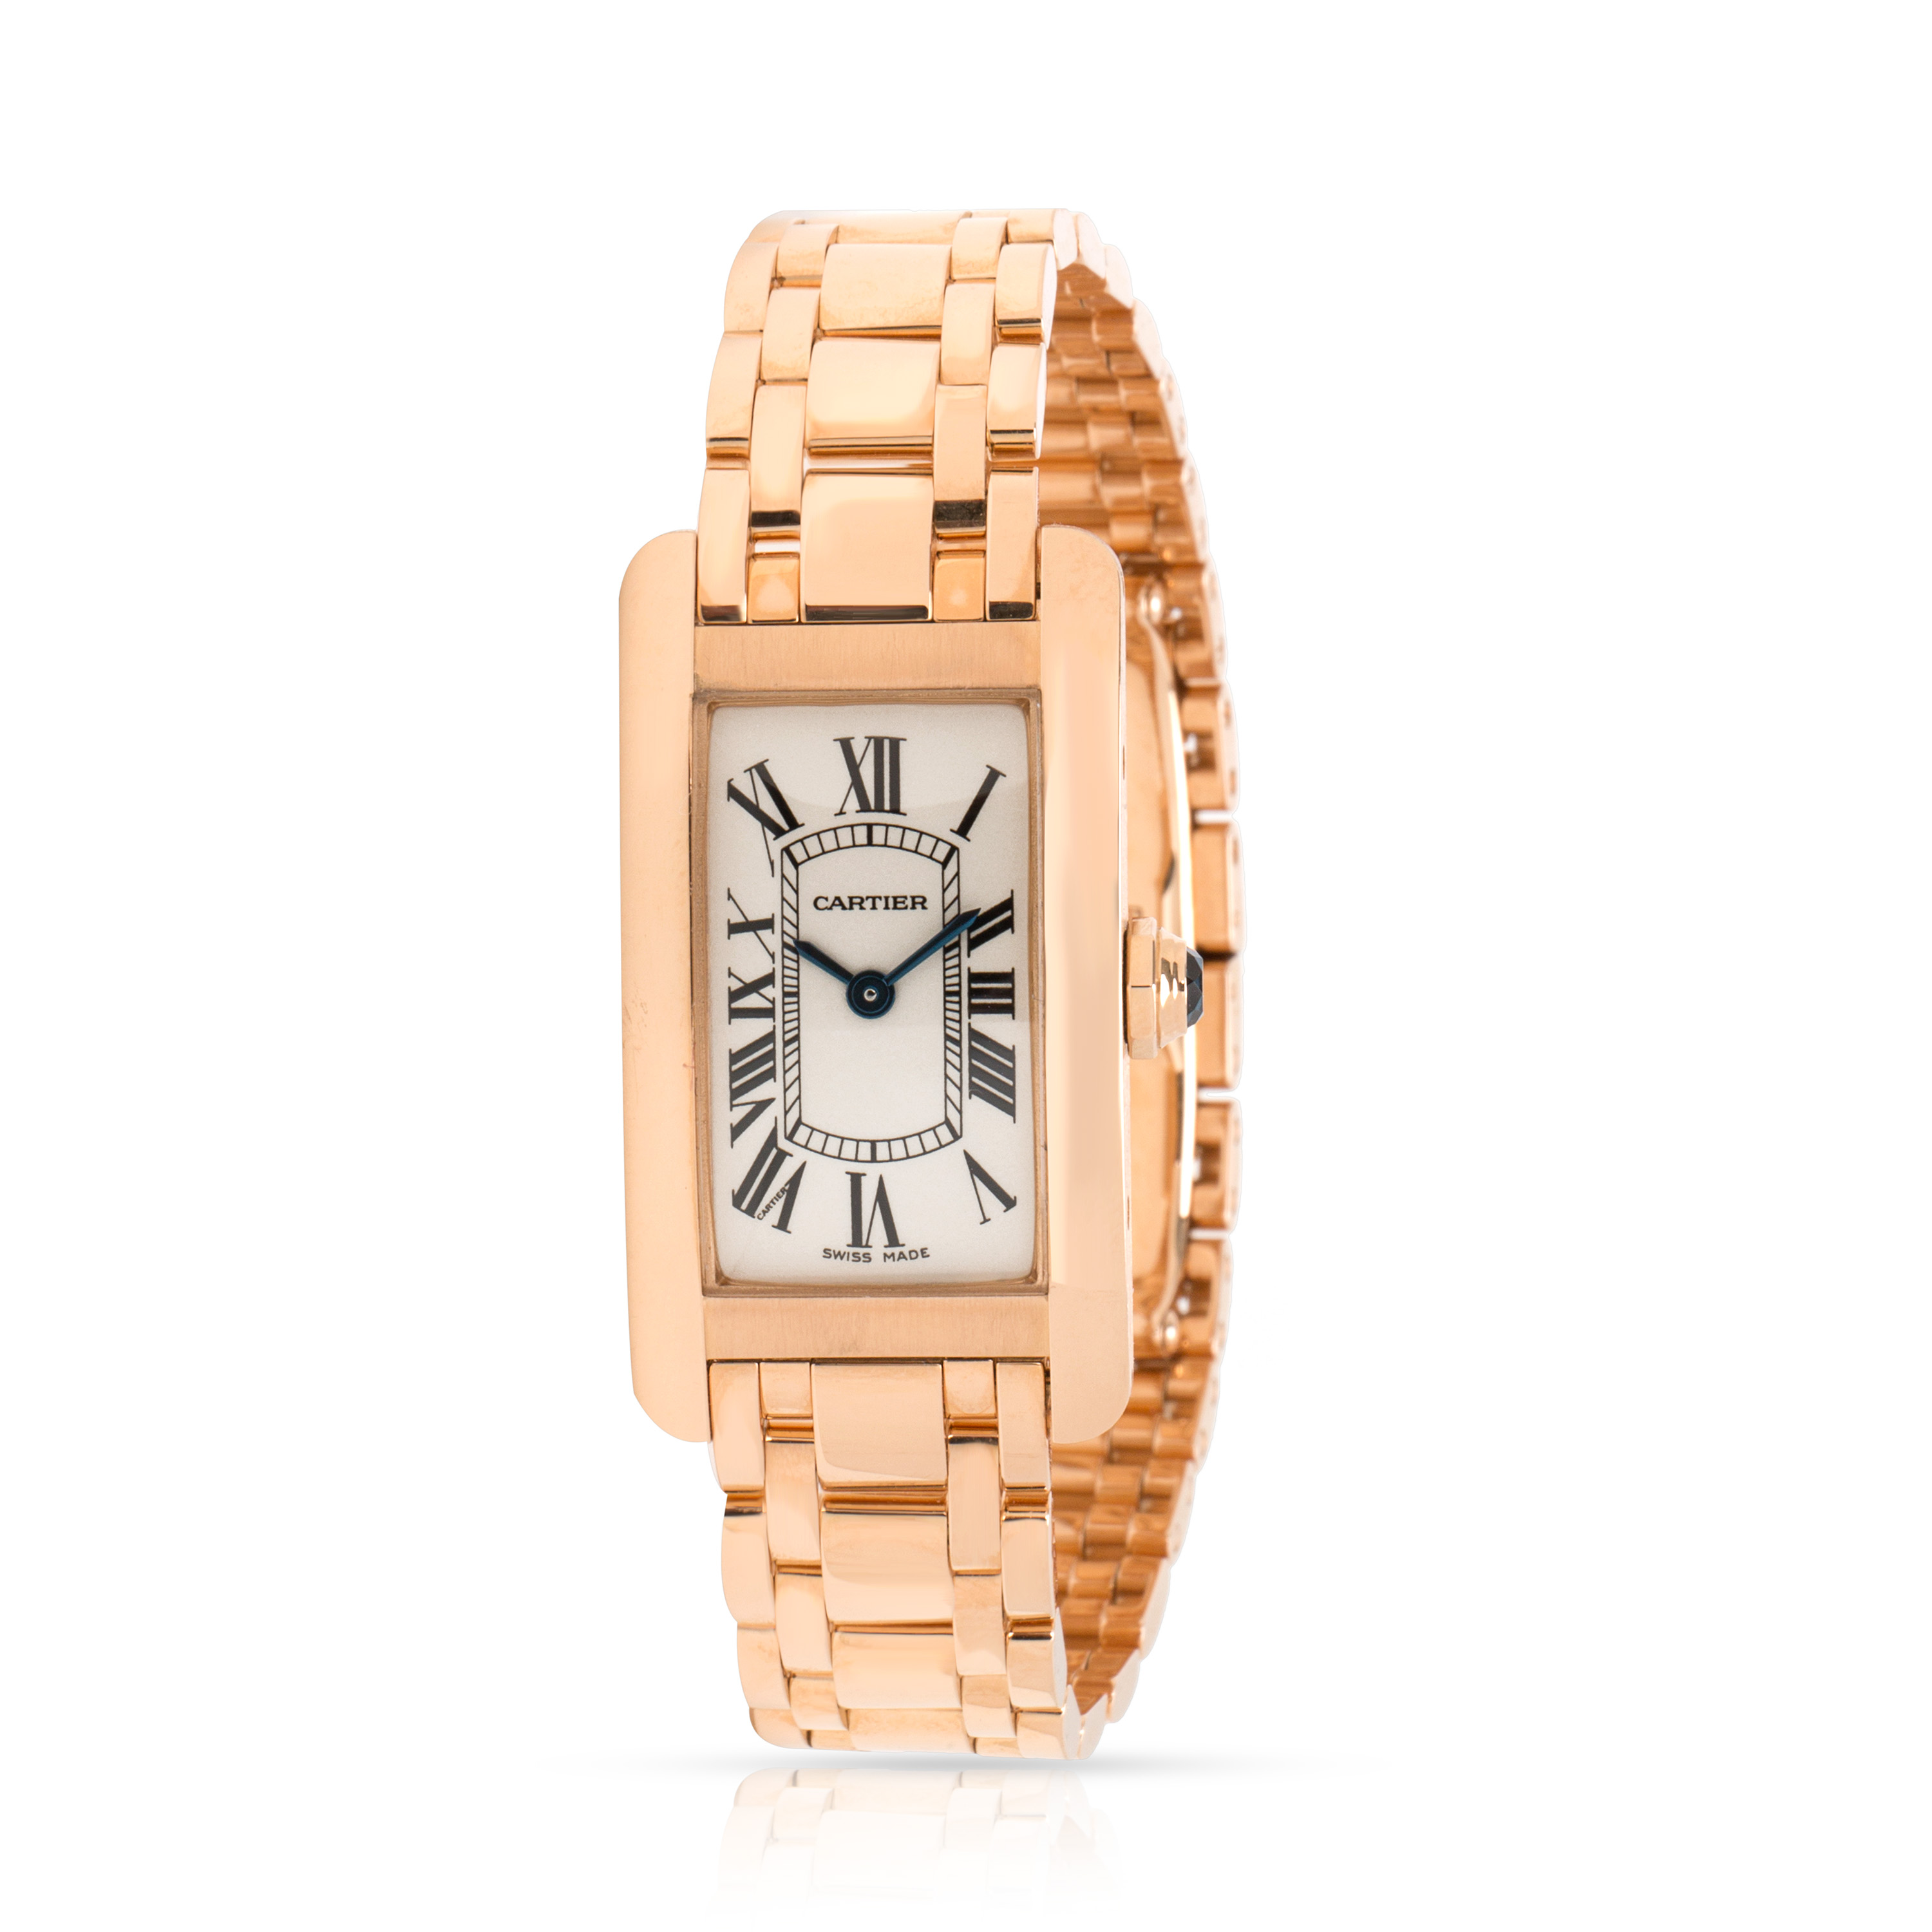 a6cc47f0d6bb Image is loading Cartier-Tank-Americaine-2503-Women-039-s-Watch-